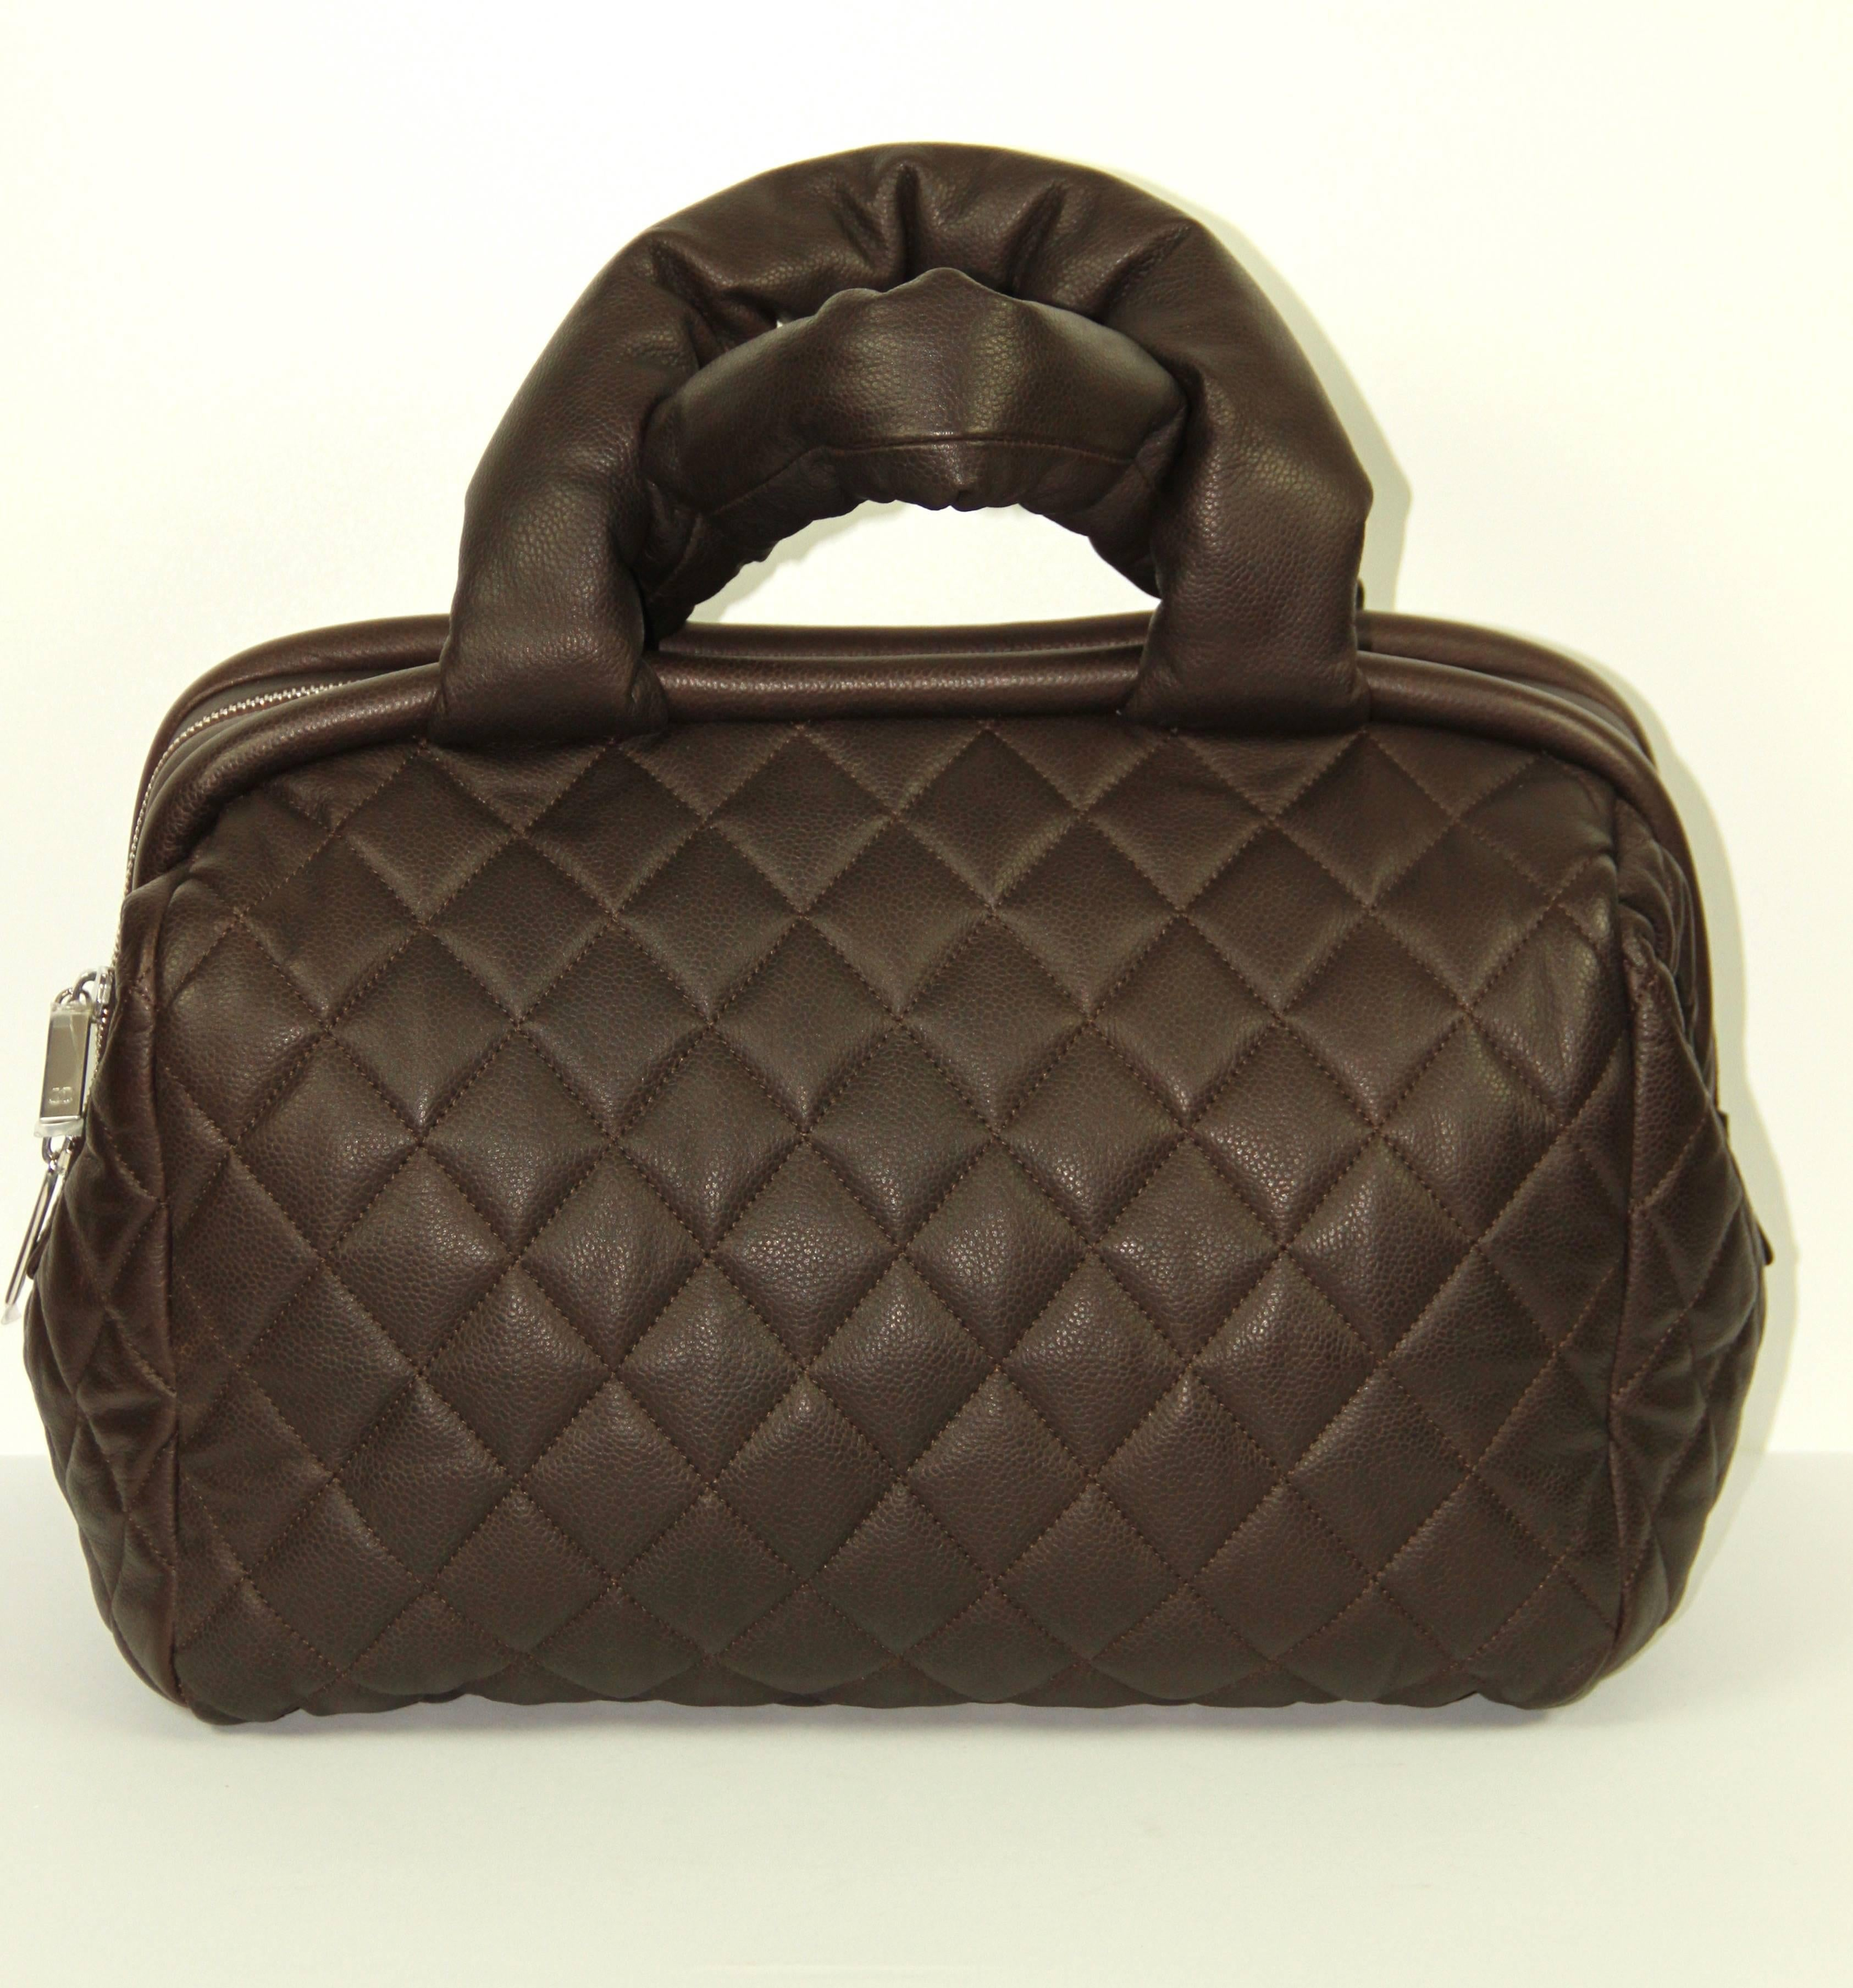 f9bcc6330e1b Chanel Coco Cocoon Nylon Bag Price- Fenix Toulouse Handball